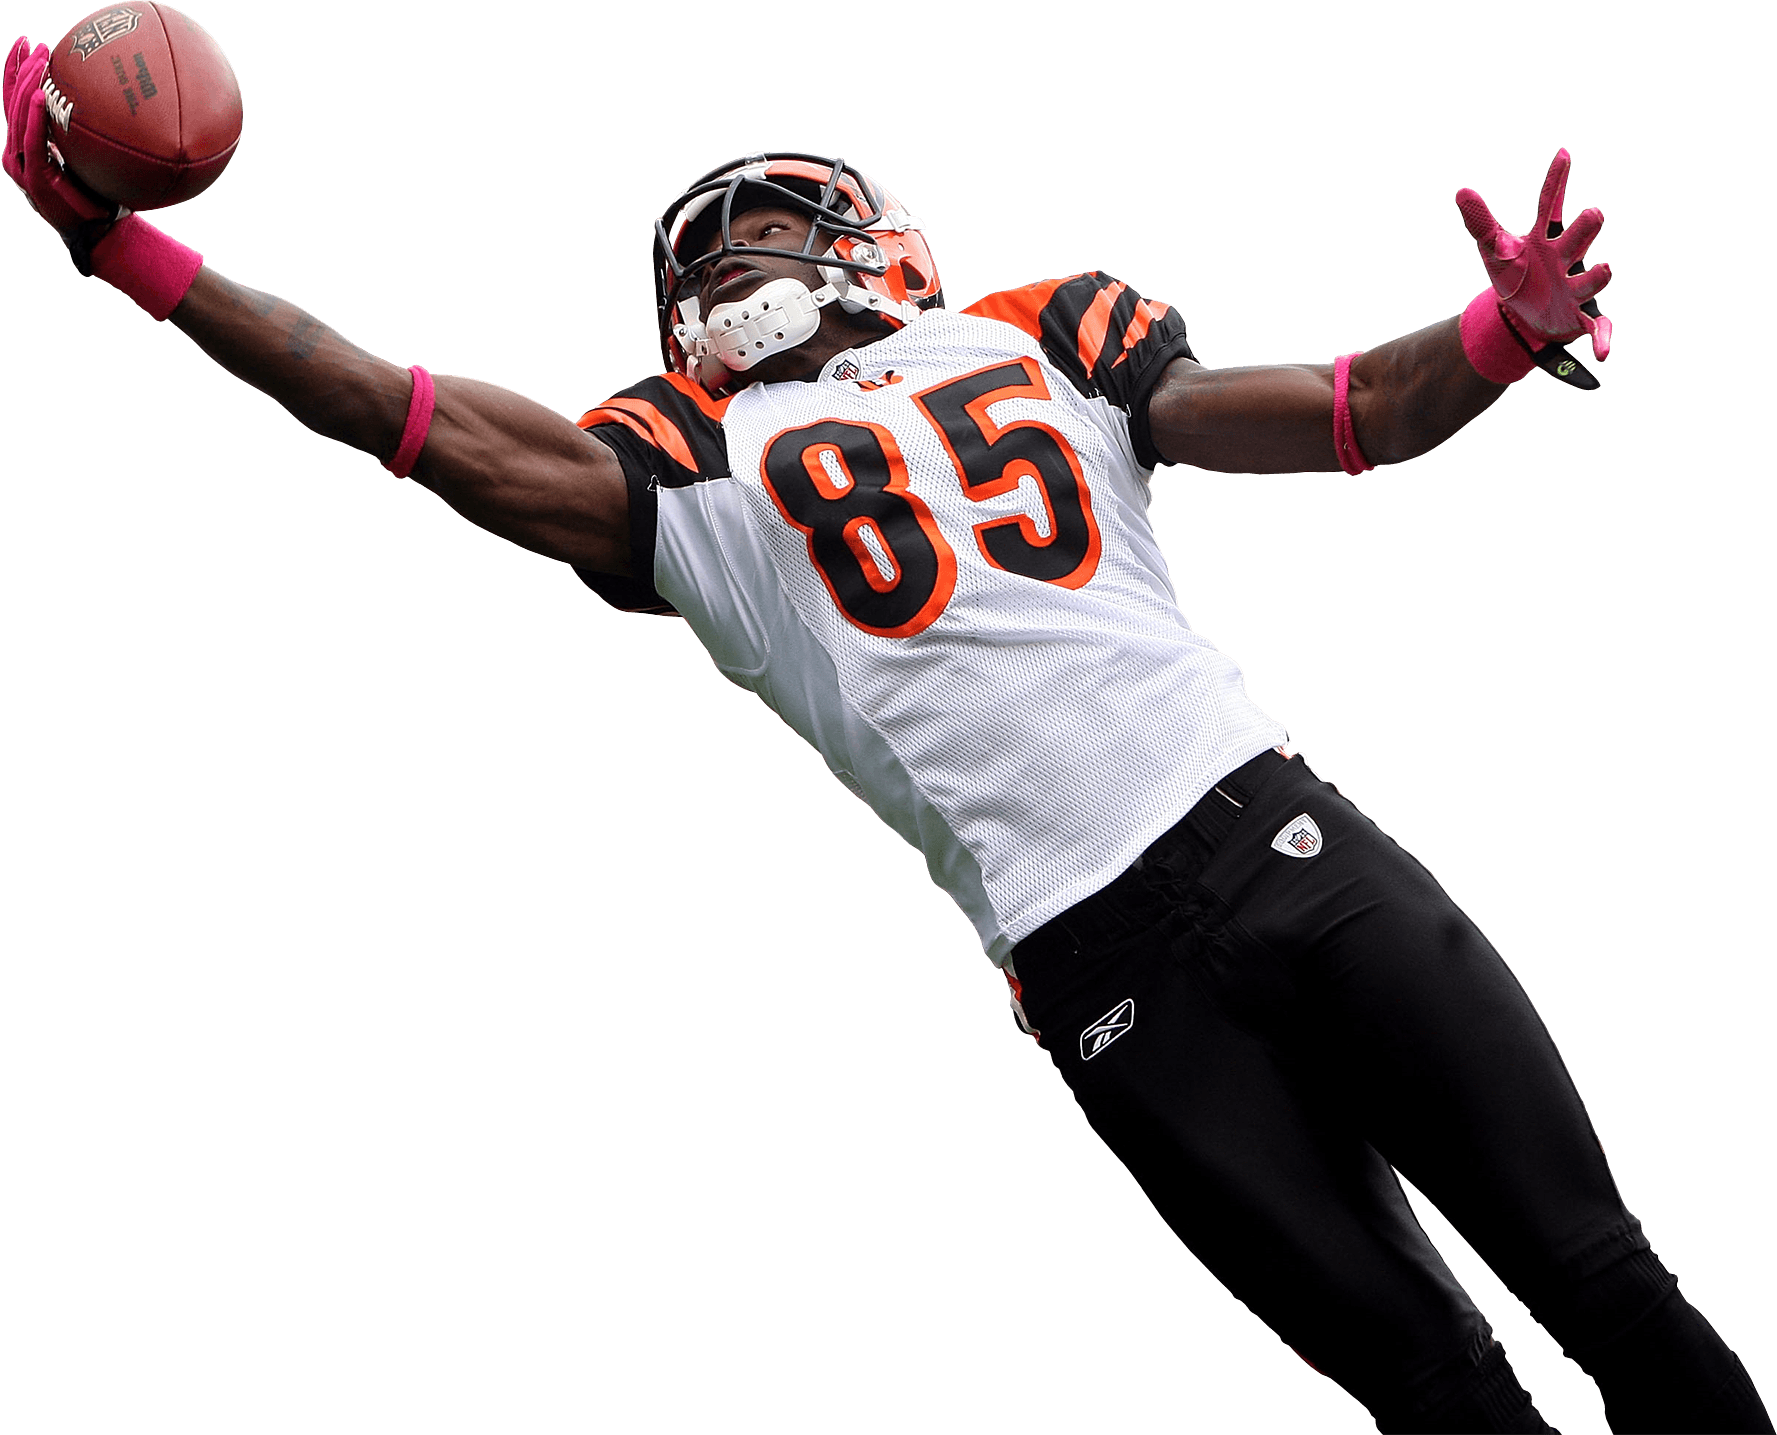 Football clipart nfl. Players wallpapers wallpaper cave